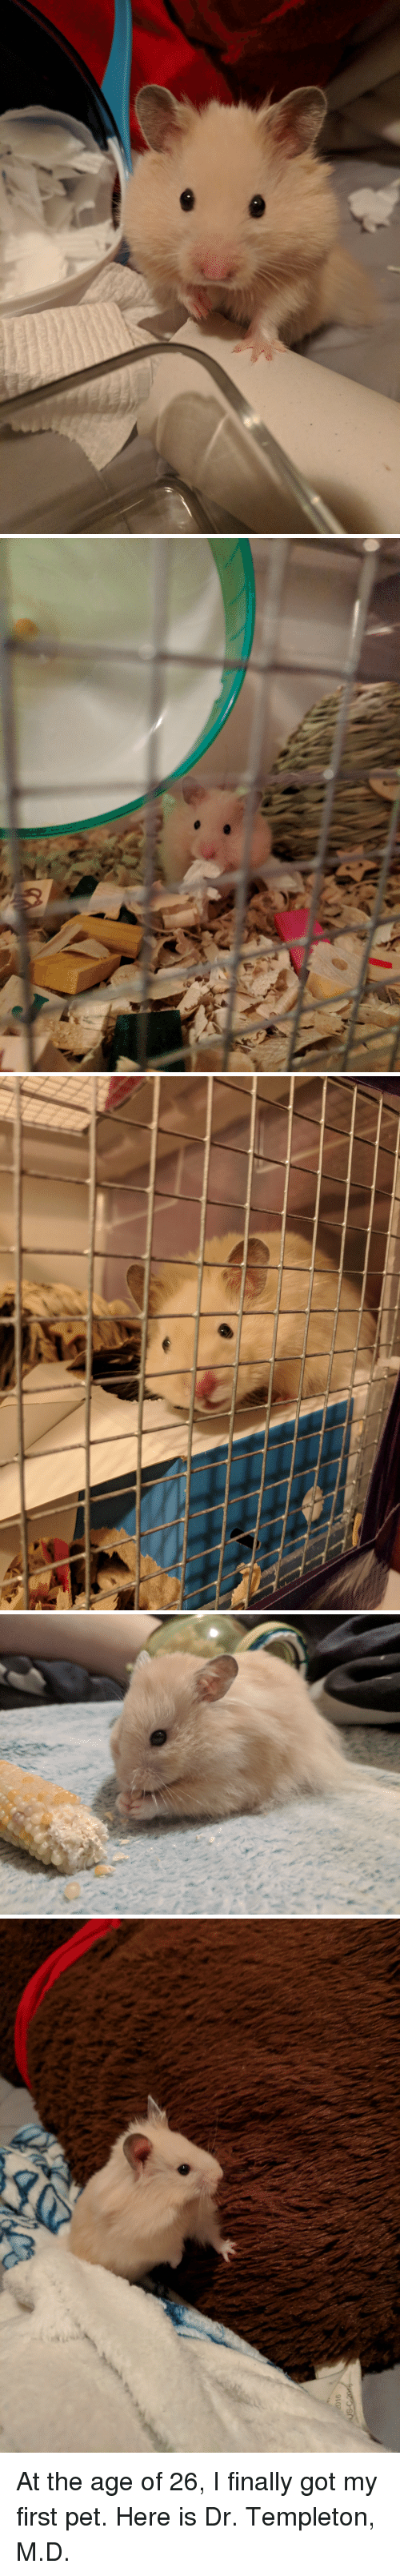 Got, Pet, and First: At the age of 26, I finally got my first pet. Here is Dr. Templeton, M.D.